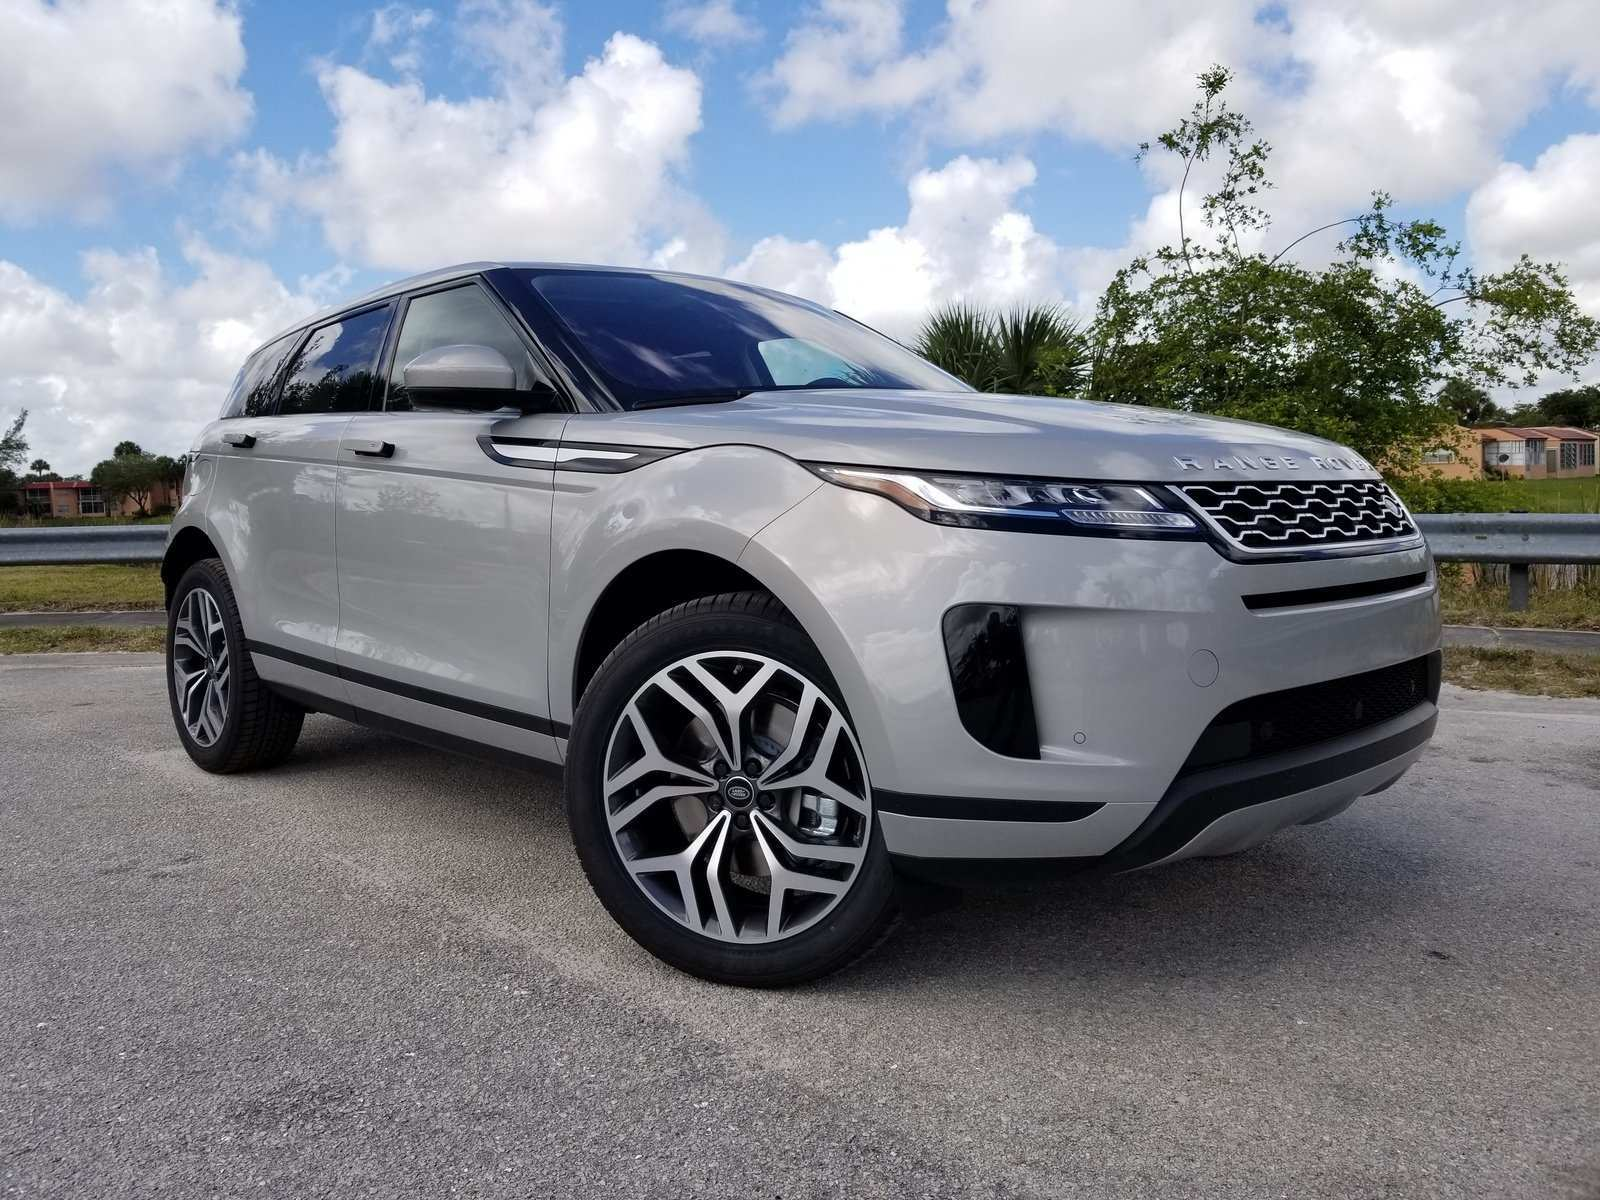 52 All New 2020 Range Rover Evoque Xl Prices